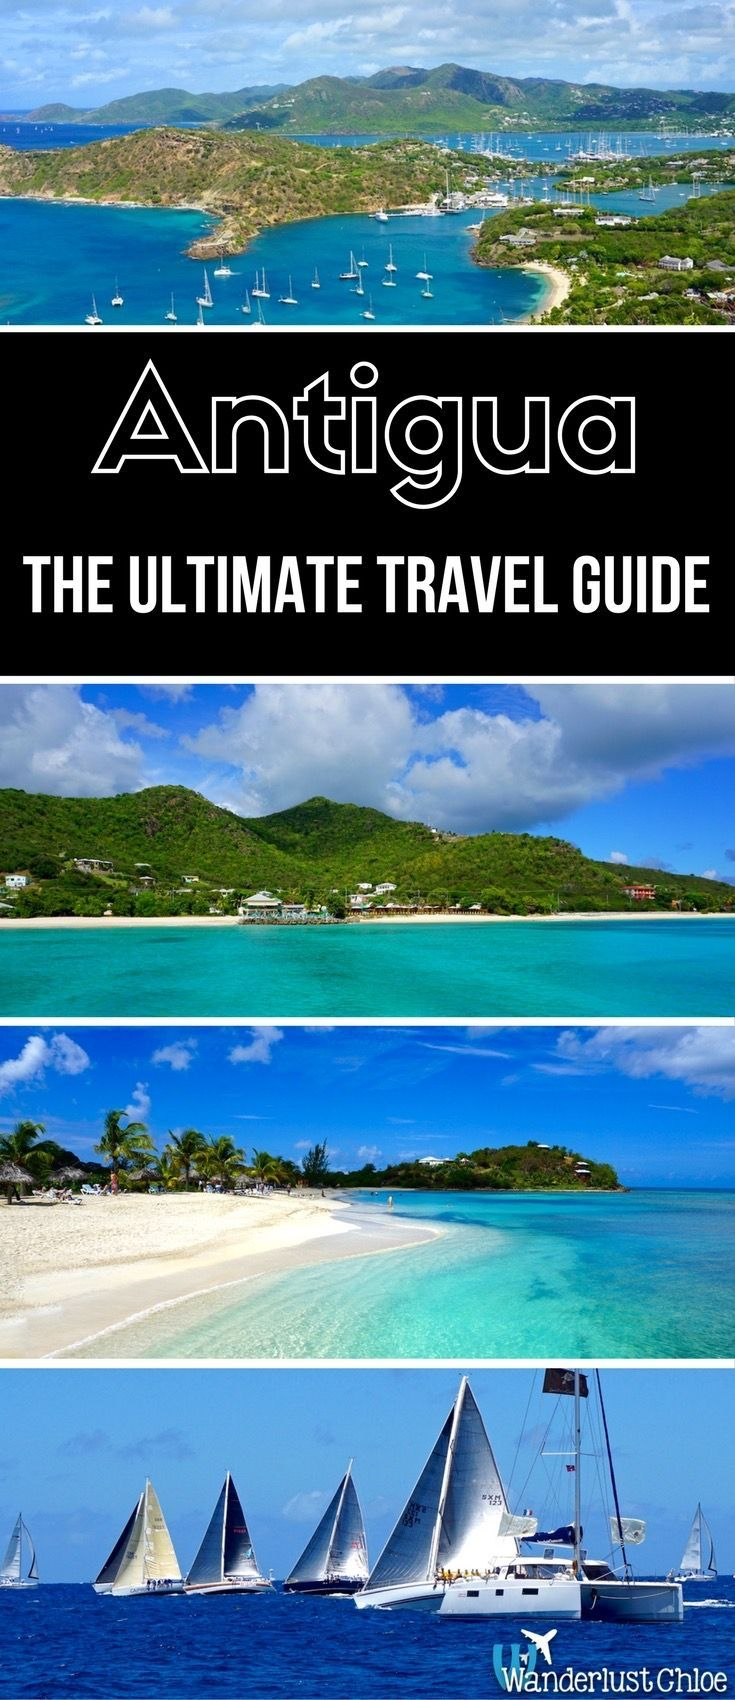 The Ultimate Antigua Travel Guide. Find out the top things to do, where to stay, where to eat and drink, and some insider information to help you plan your holiday to Antigua in the Caribbean. https://www.wanderlustchloe.com/antigua-travel-guide-caribbean/?utm_content=bufferda04a&utm_medium=social&utm_source=pinterest.com&utm_campaign=buffer: